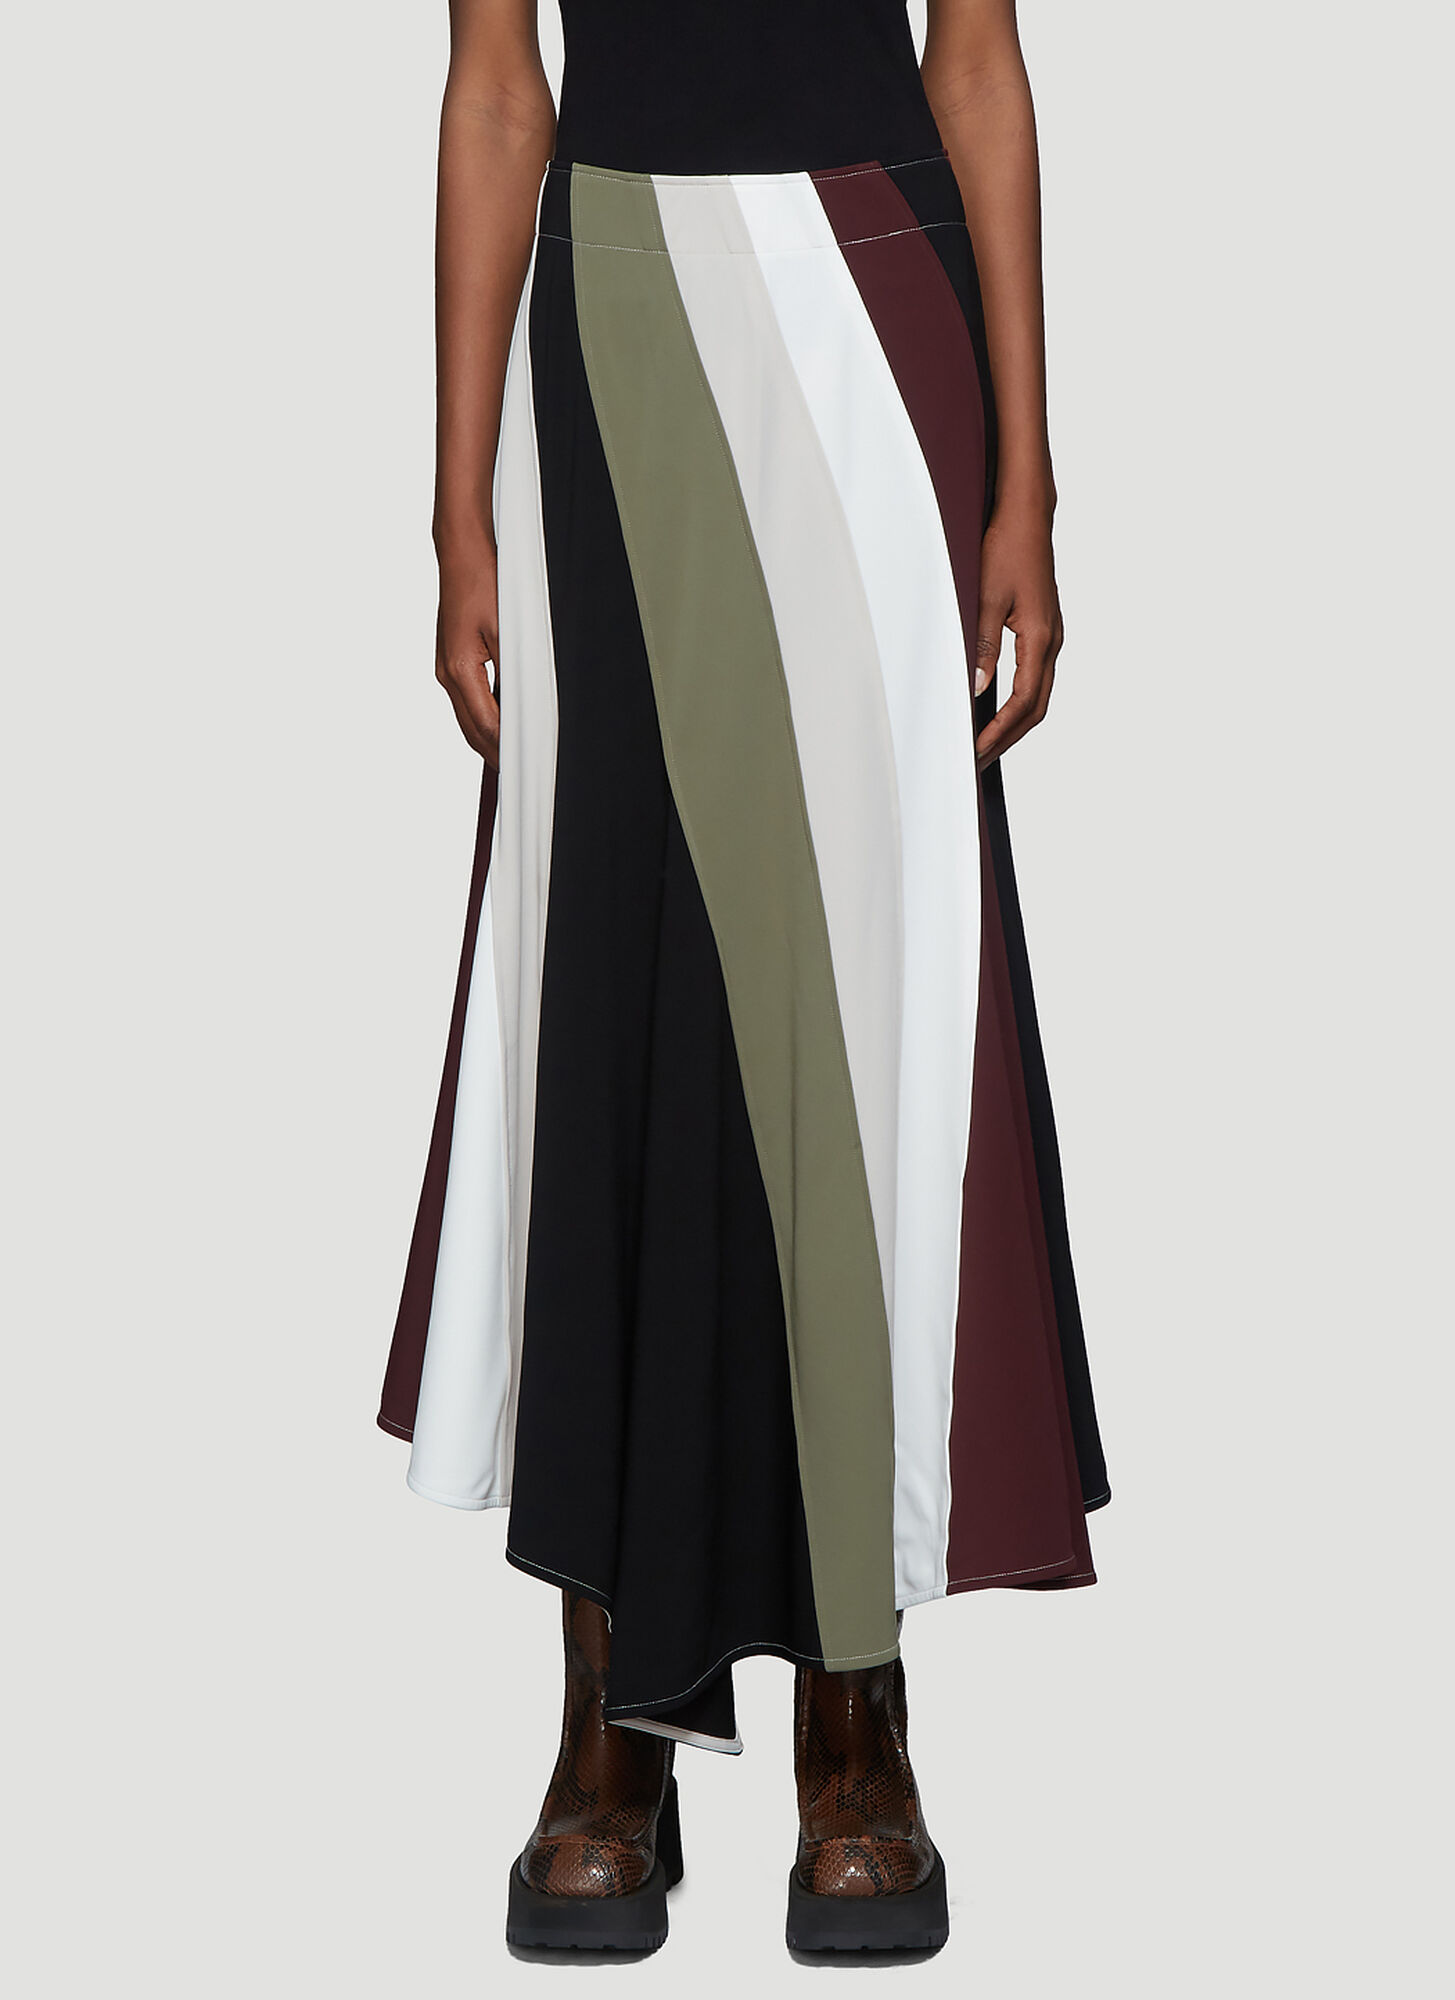 JW Anderson Contrast Panel Flared Skirt in Purple